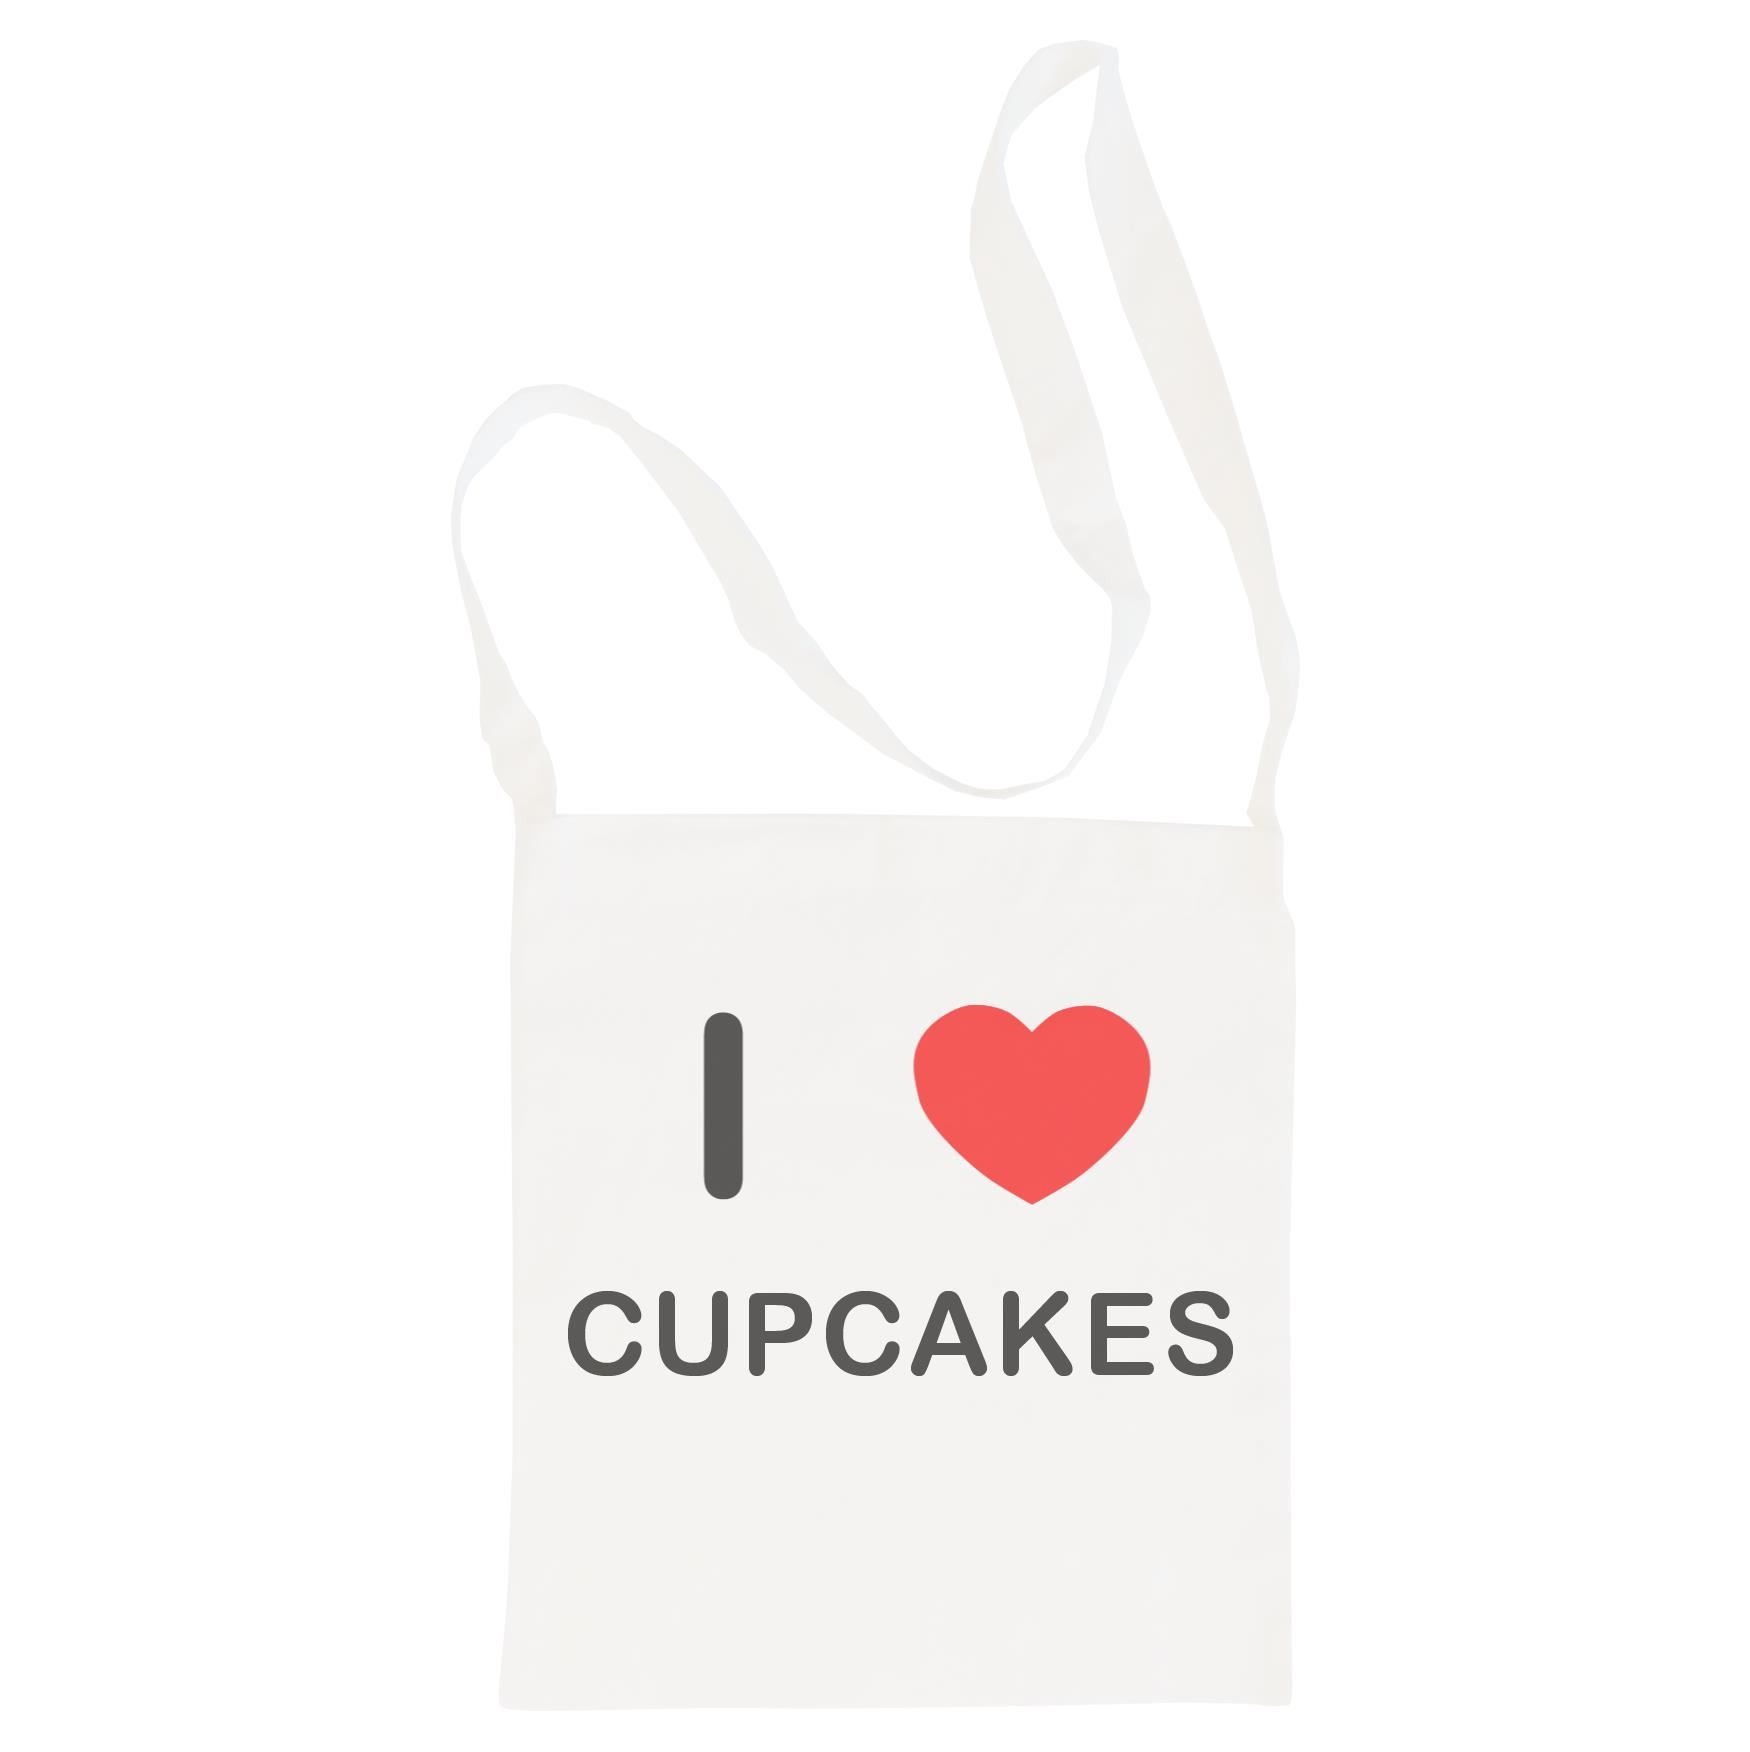 I Love Cupcakes - Cotton Bag | Size choice Tote, Shopper or Sling